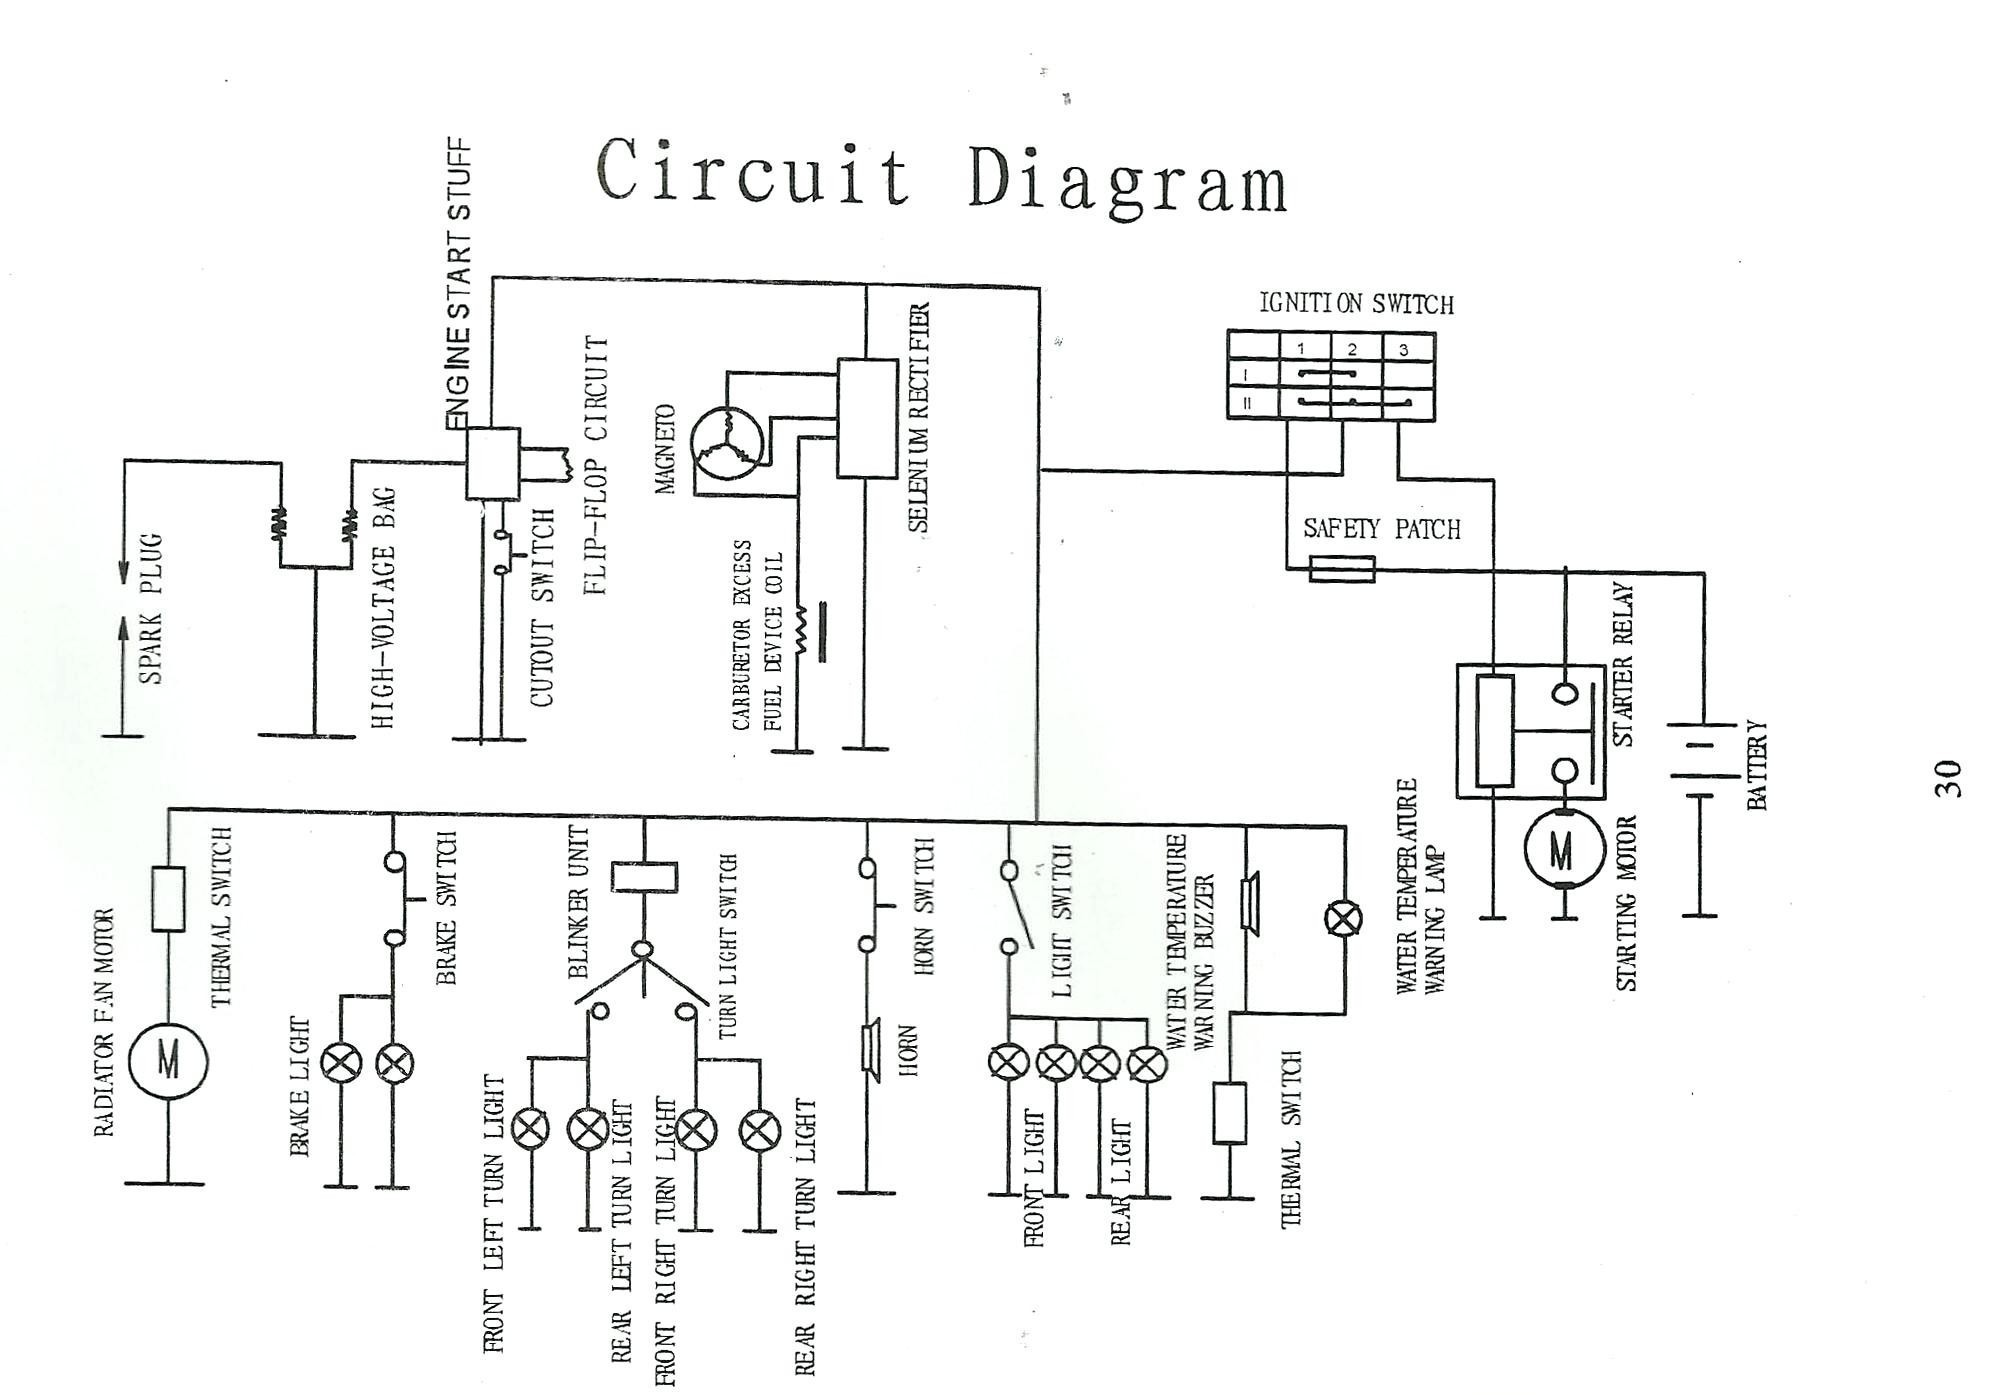 Wiring Diagram Sachs Bikes Trusted Jawa Bike Schematic Diagrams